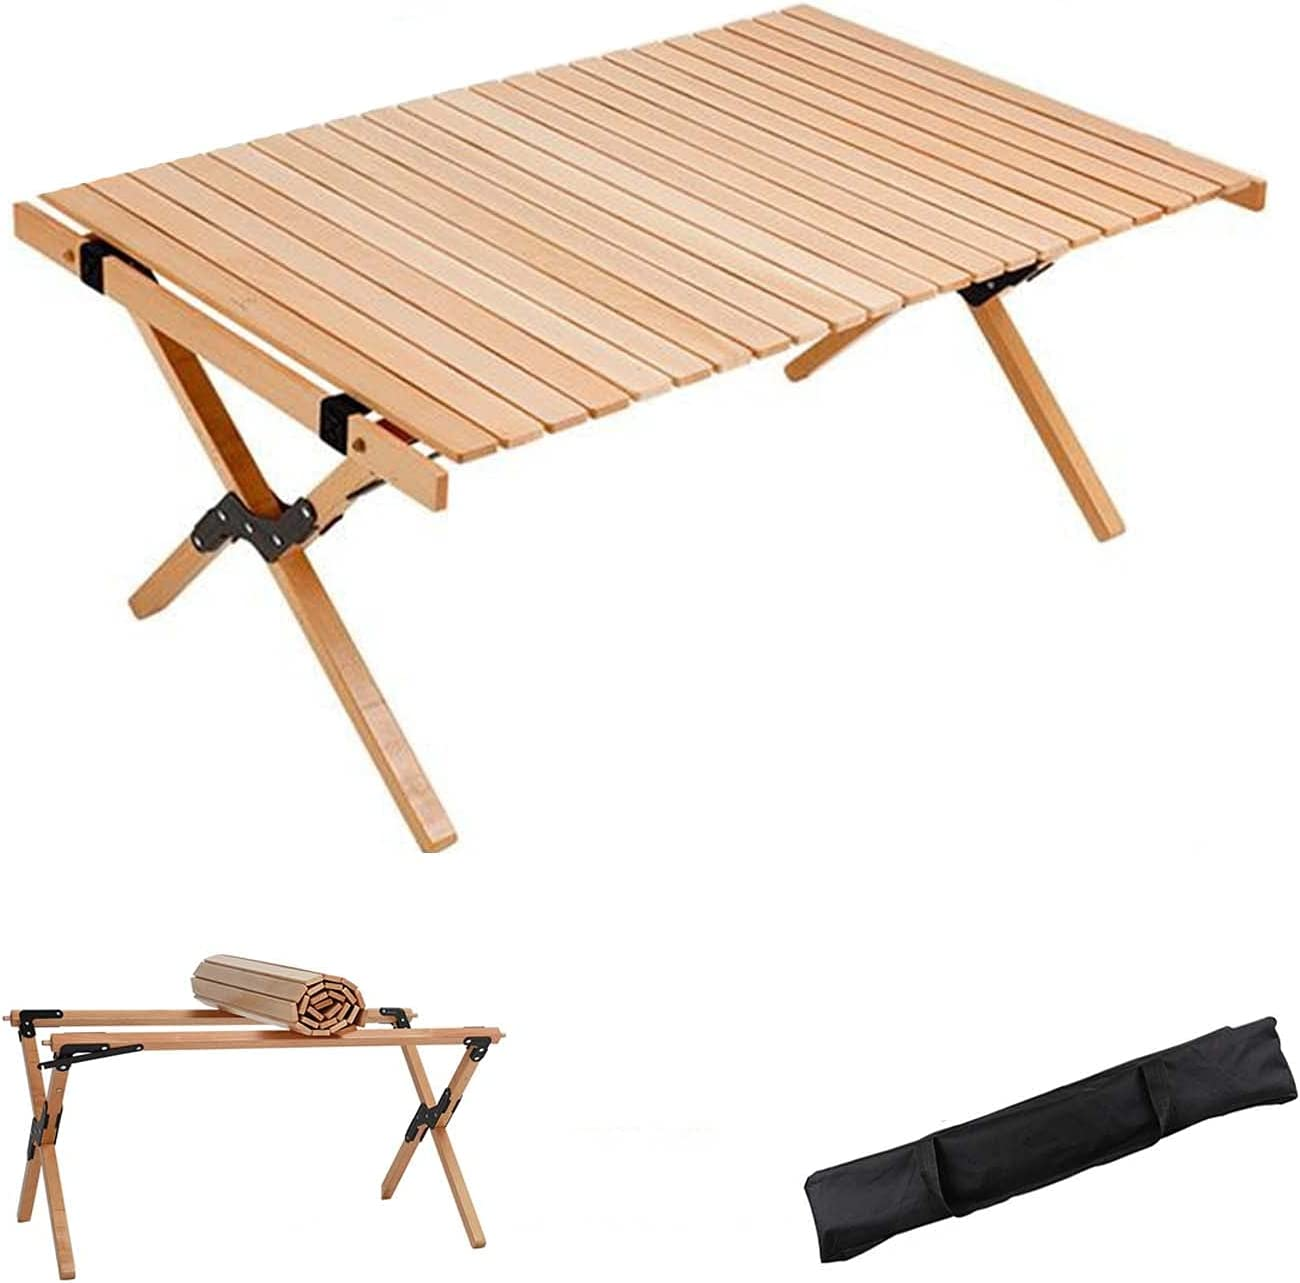 ZRXRY Folding Picnic Max 70% OFF Camping Wooden Ultra-Cheap Deals Portable Table Dining